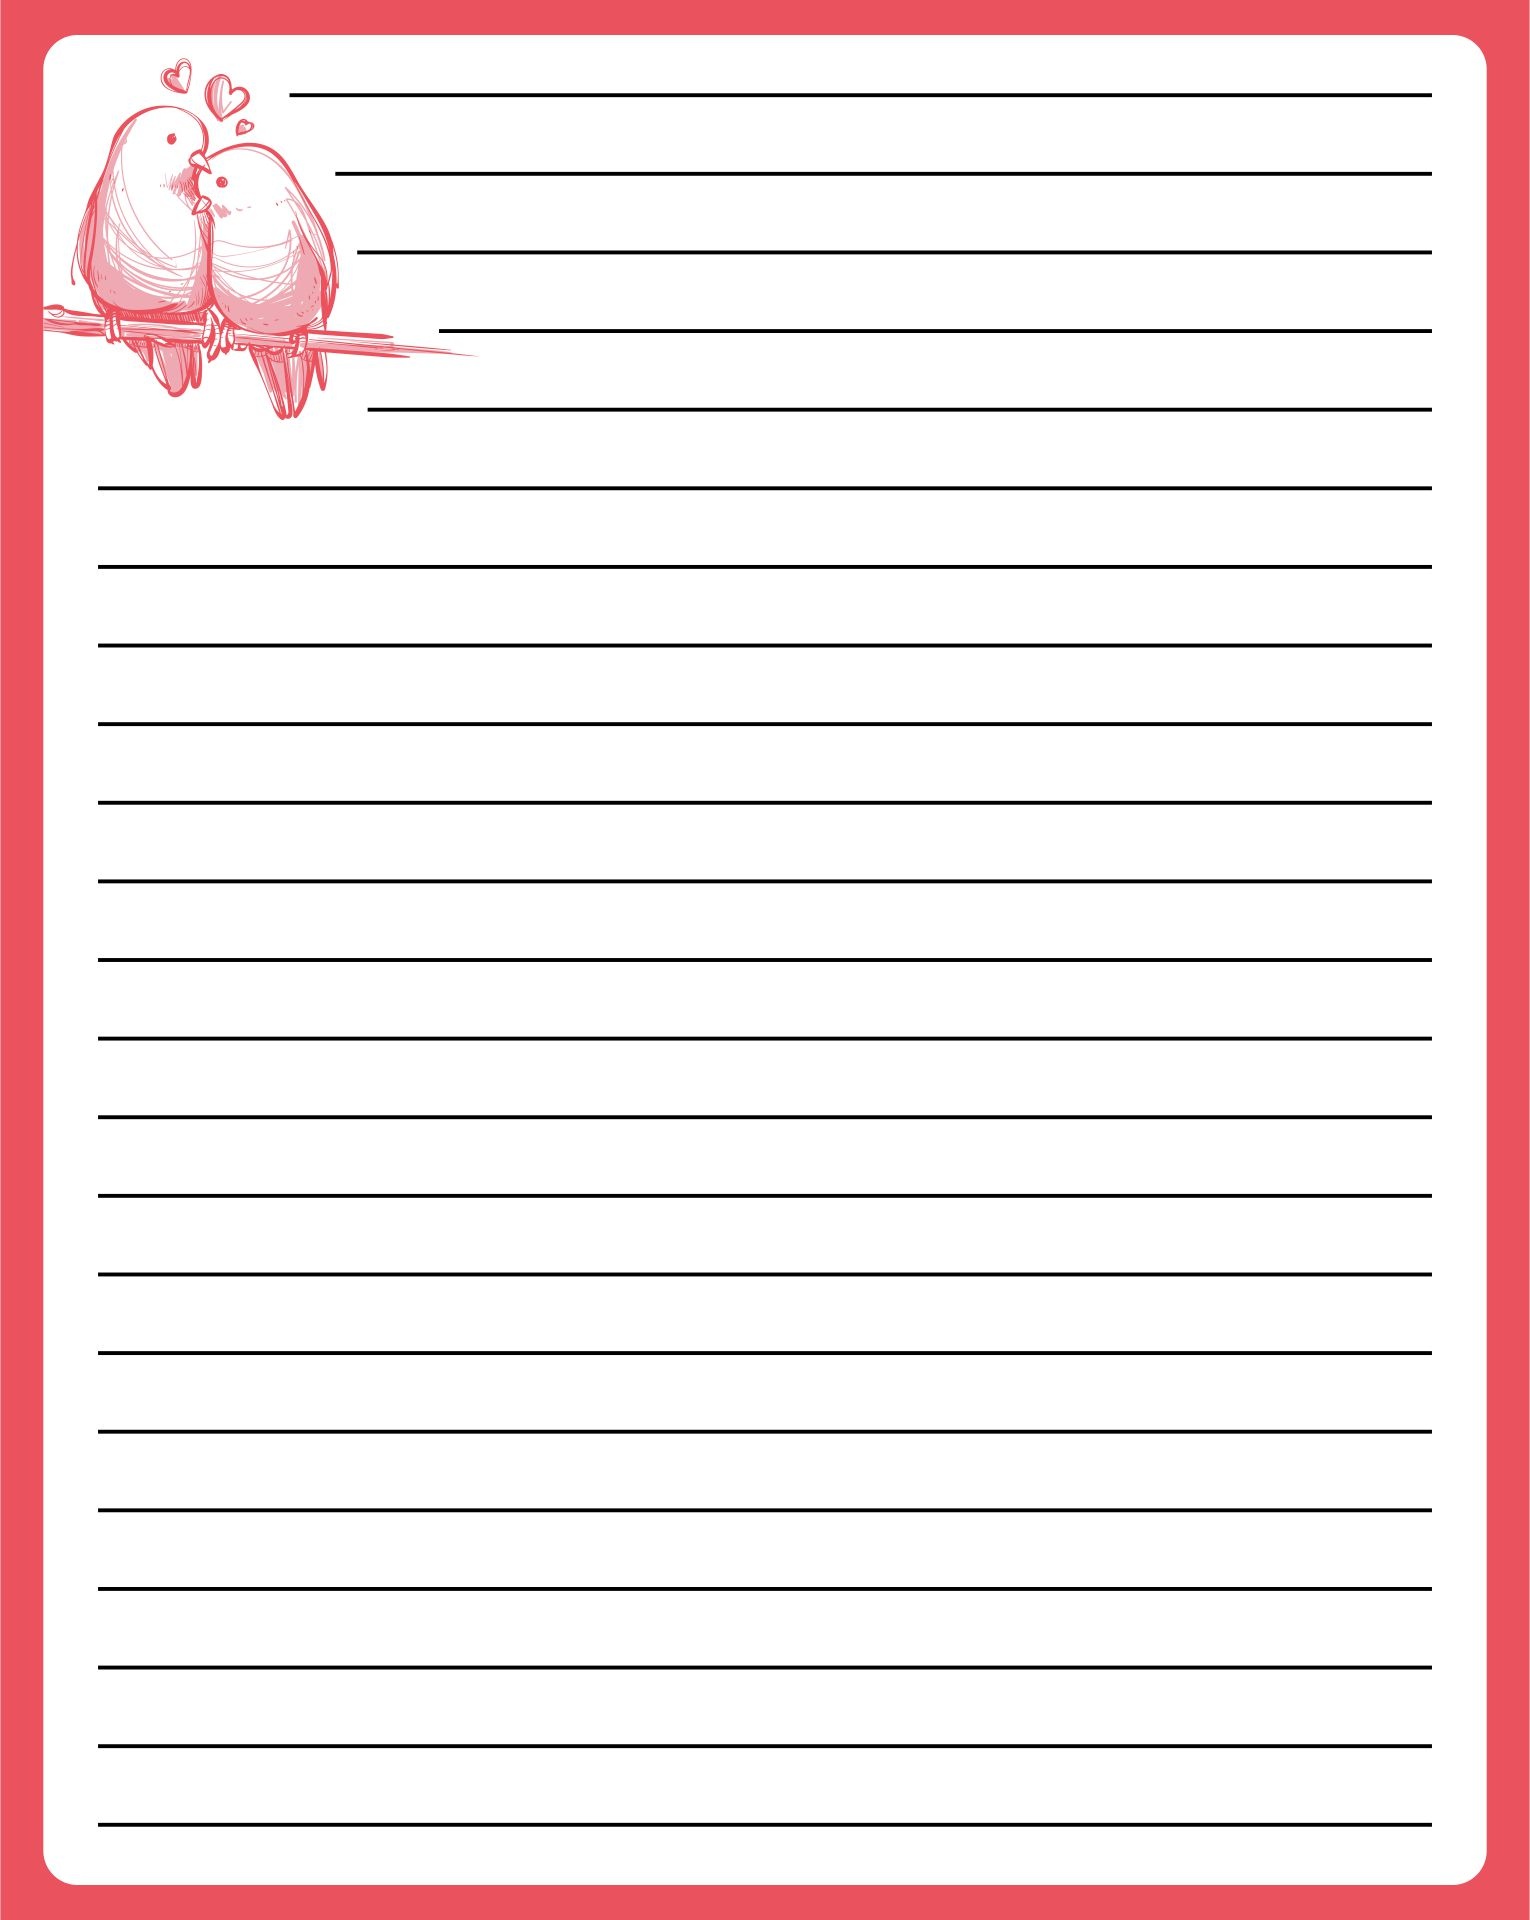 Free Love Letter Stationery Template